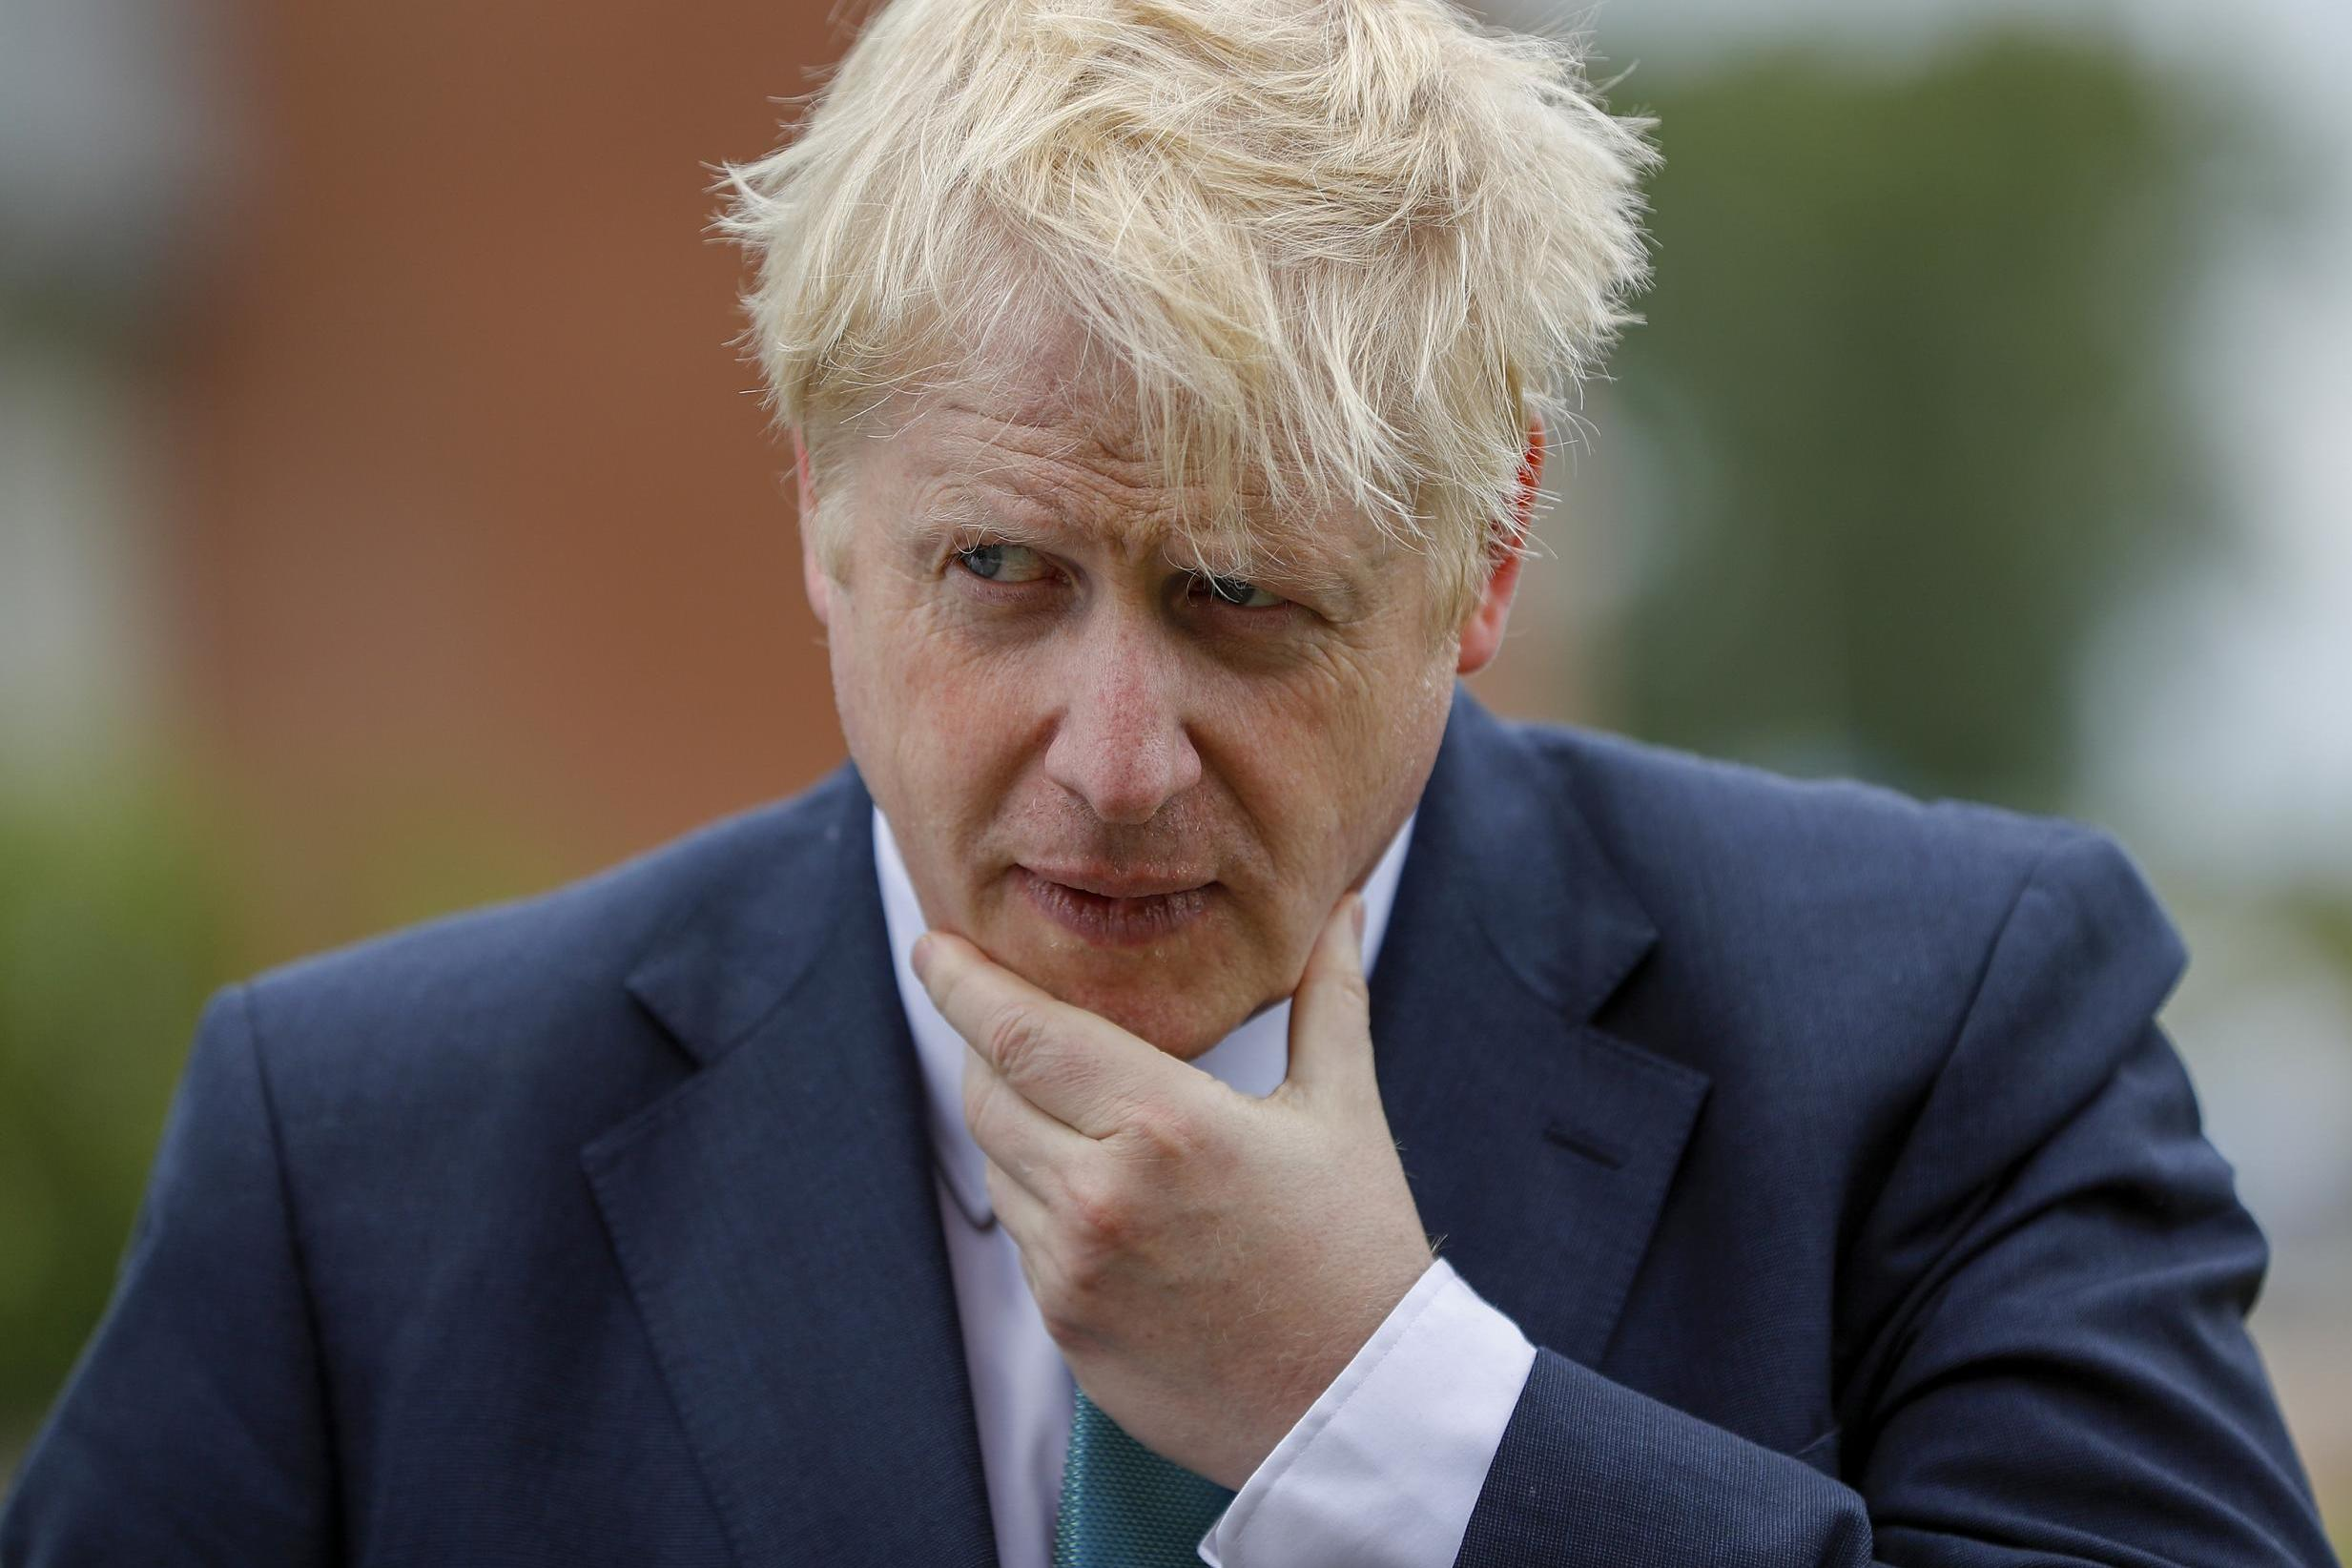 Brexit: EU tells Boris Johnson he must move 'further and faster' to get deal in time